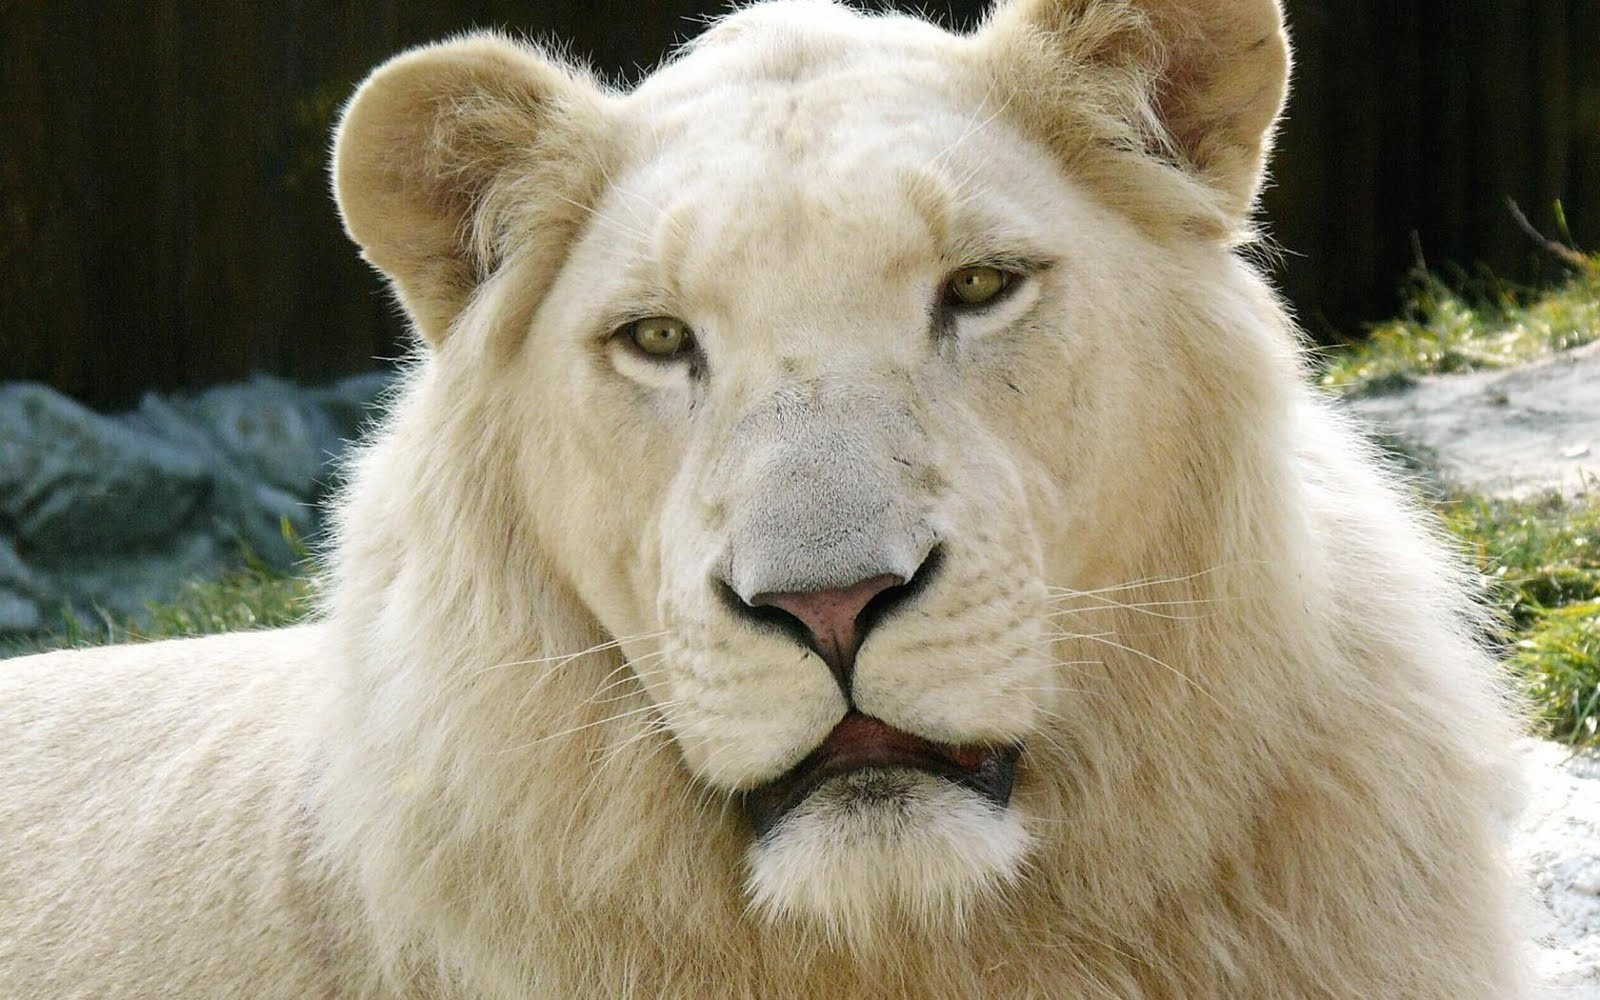 Beautiful Lions Wallpapers & Photos, Pictures - Free ...